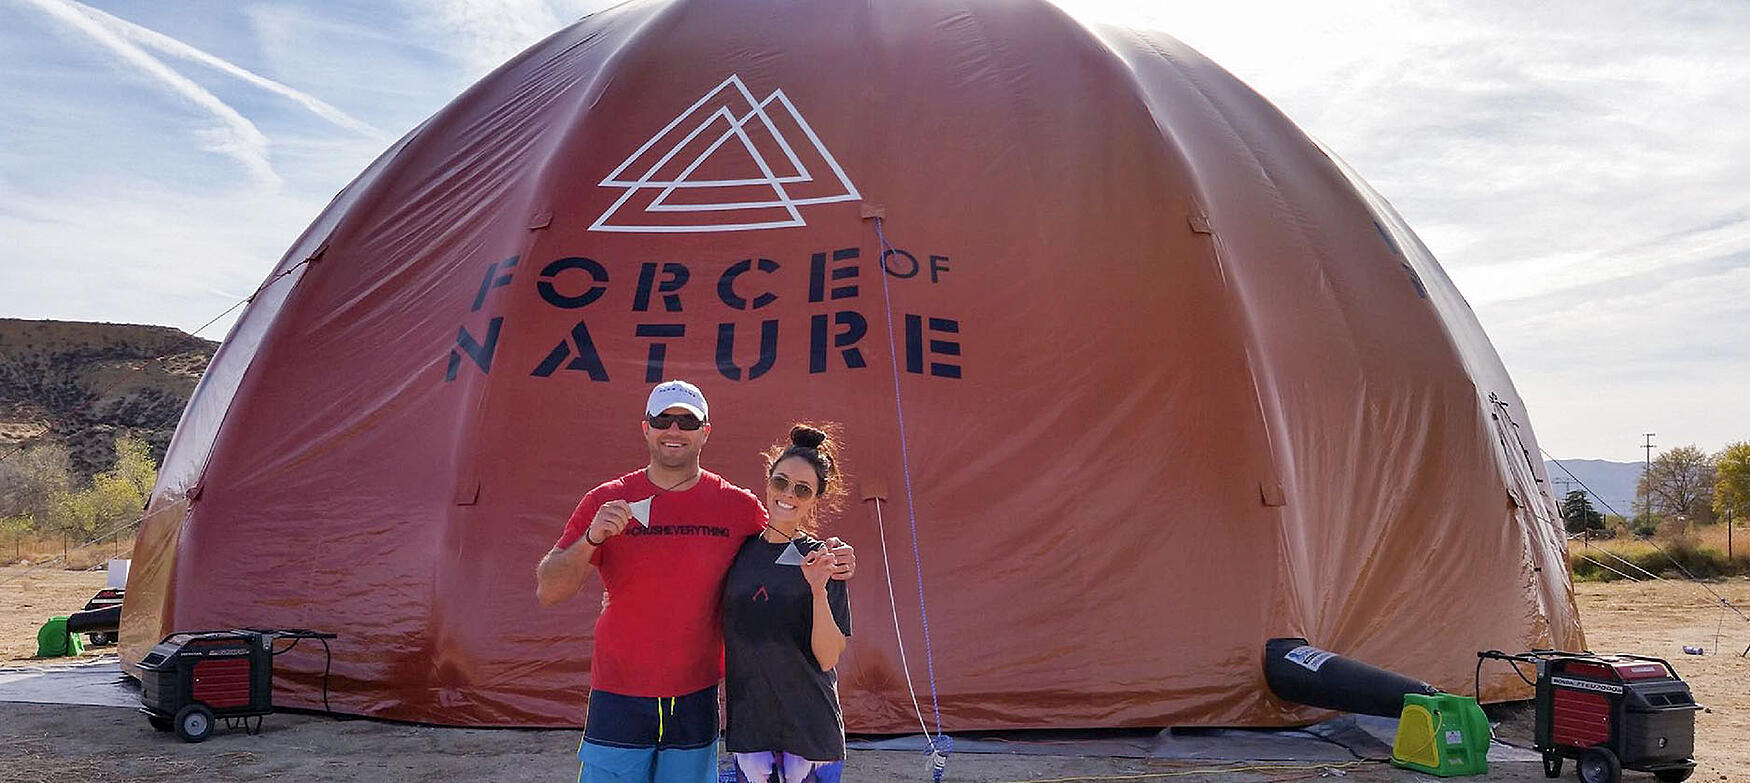 Inflatable Dome customized for Force of Nature